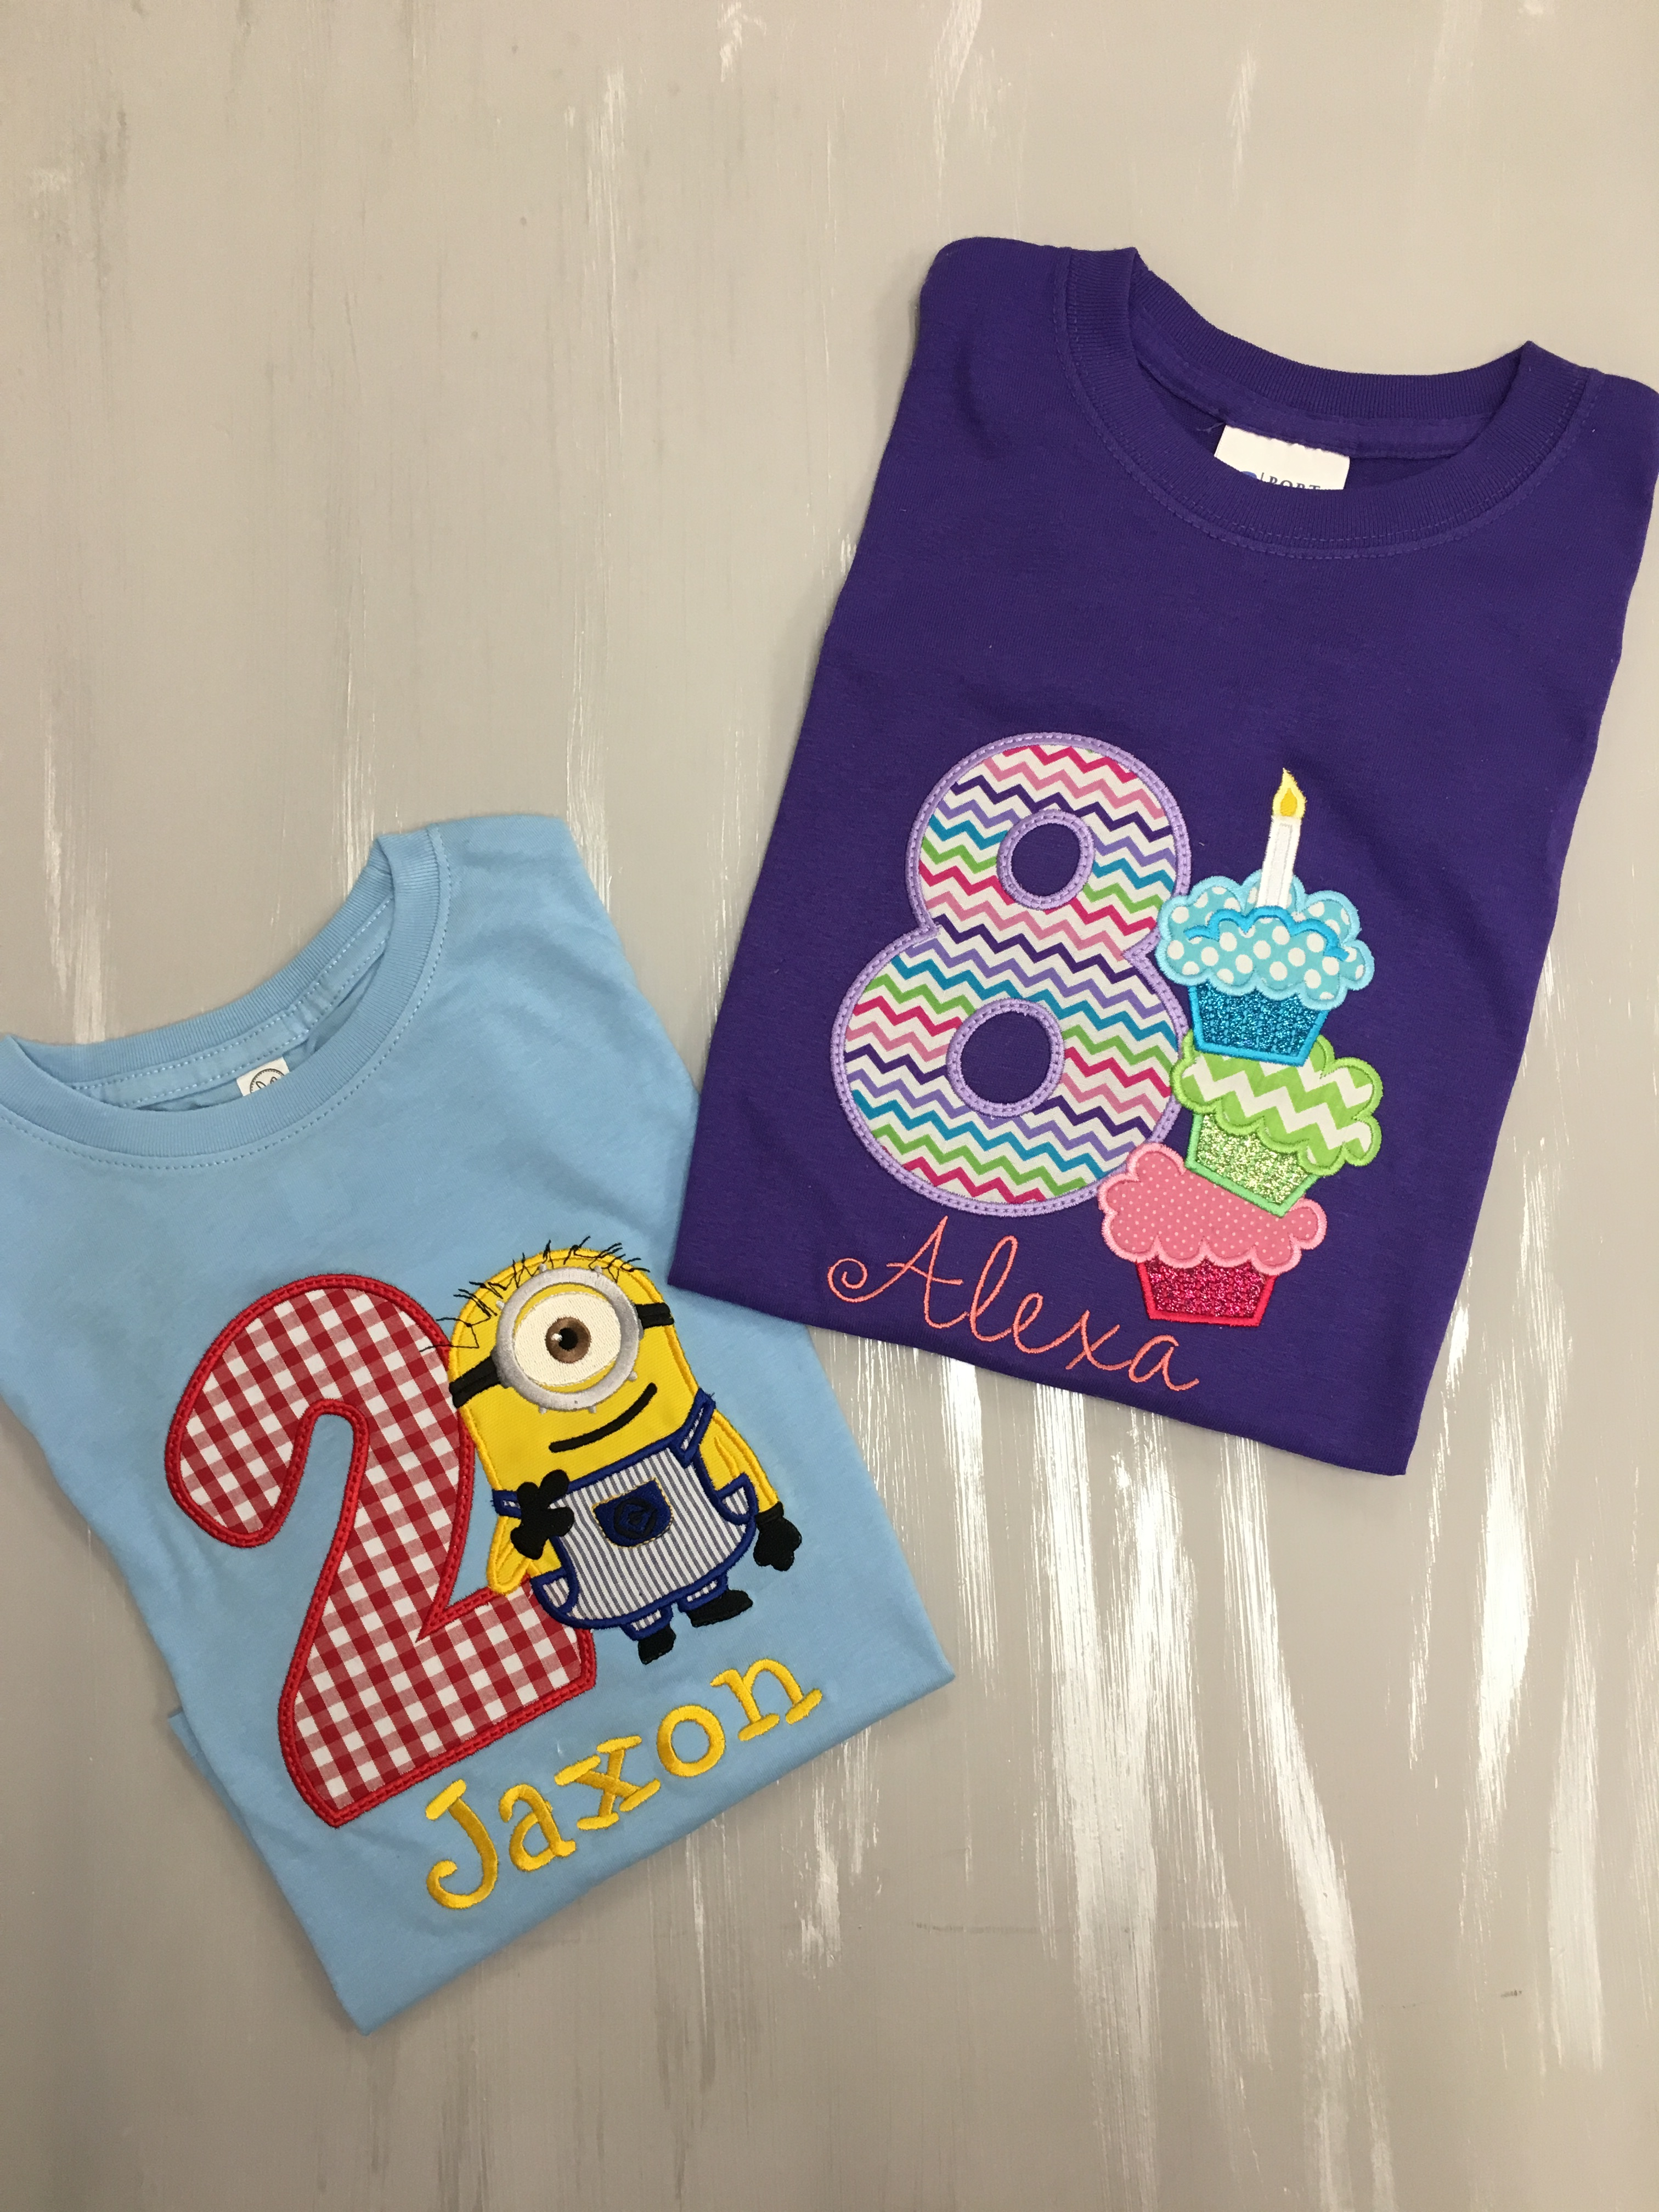 Birthday Shirts!